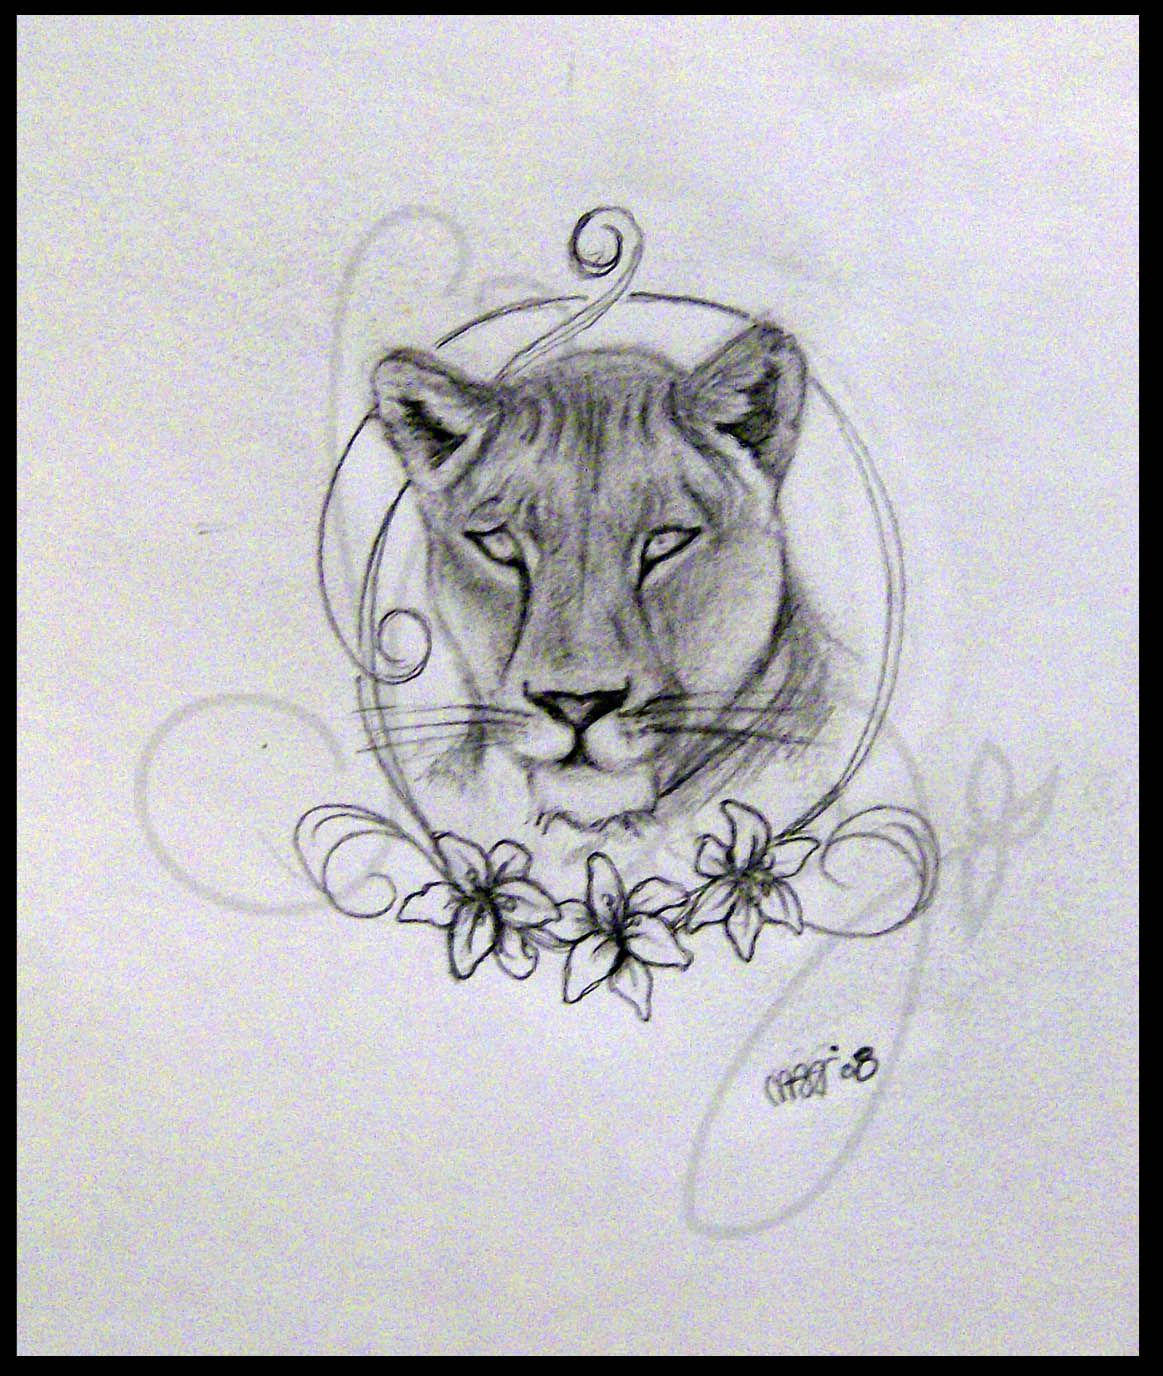 Pin by StarFighter on Tattoos Lioness tattoo, Lion